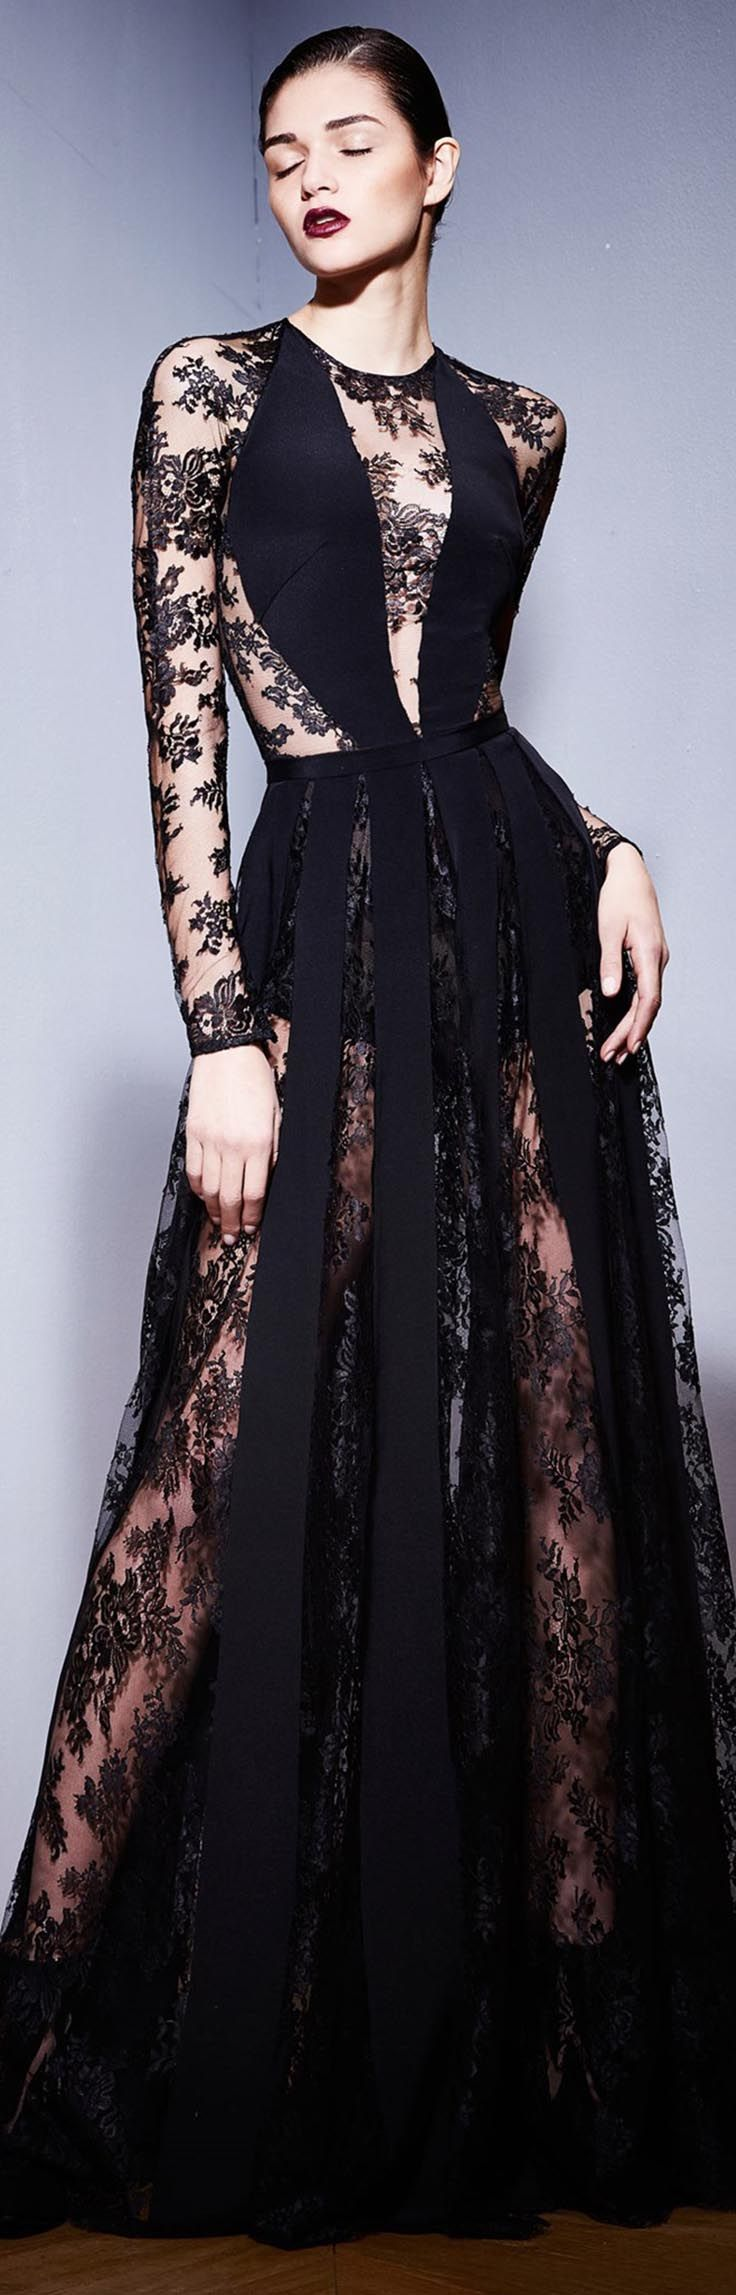 Zuhair Murad 2015 Latest Fall Winter                                                                                                                                                                                 More